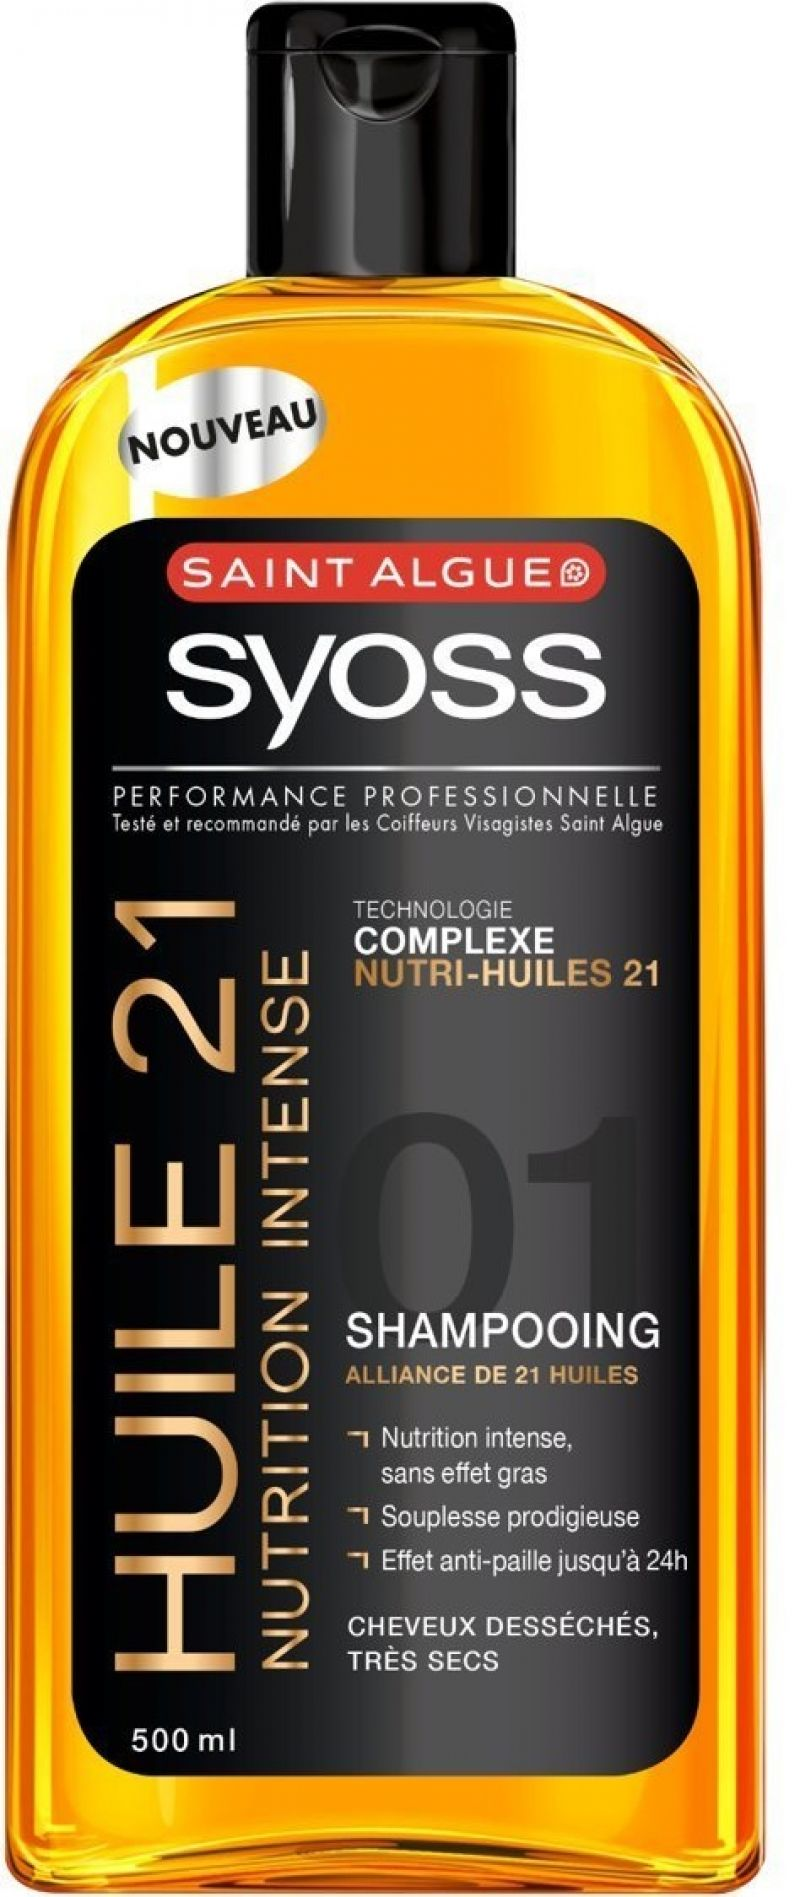 Huile 21 Nutrition Intense, Saint Algue Syoss : sofasong aime !